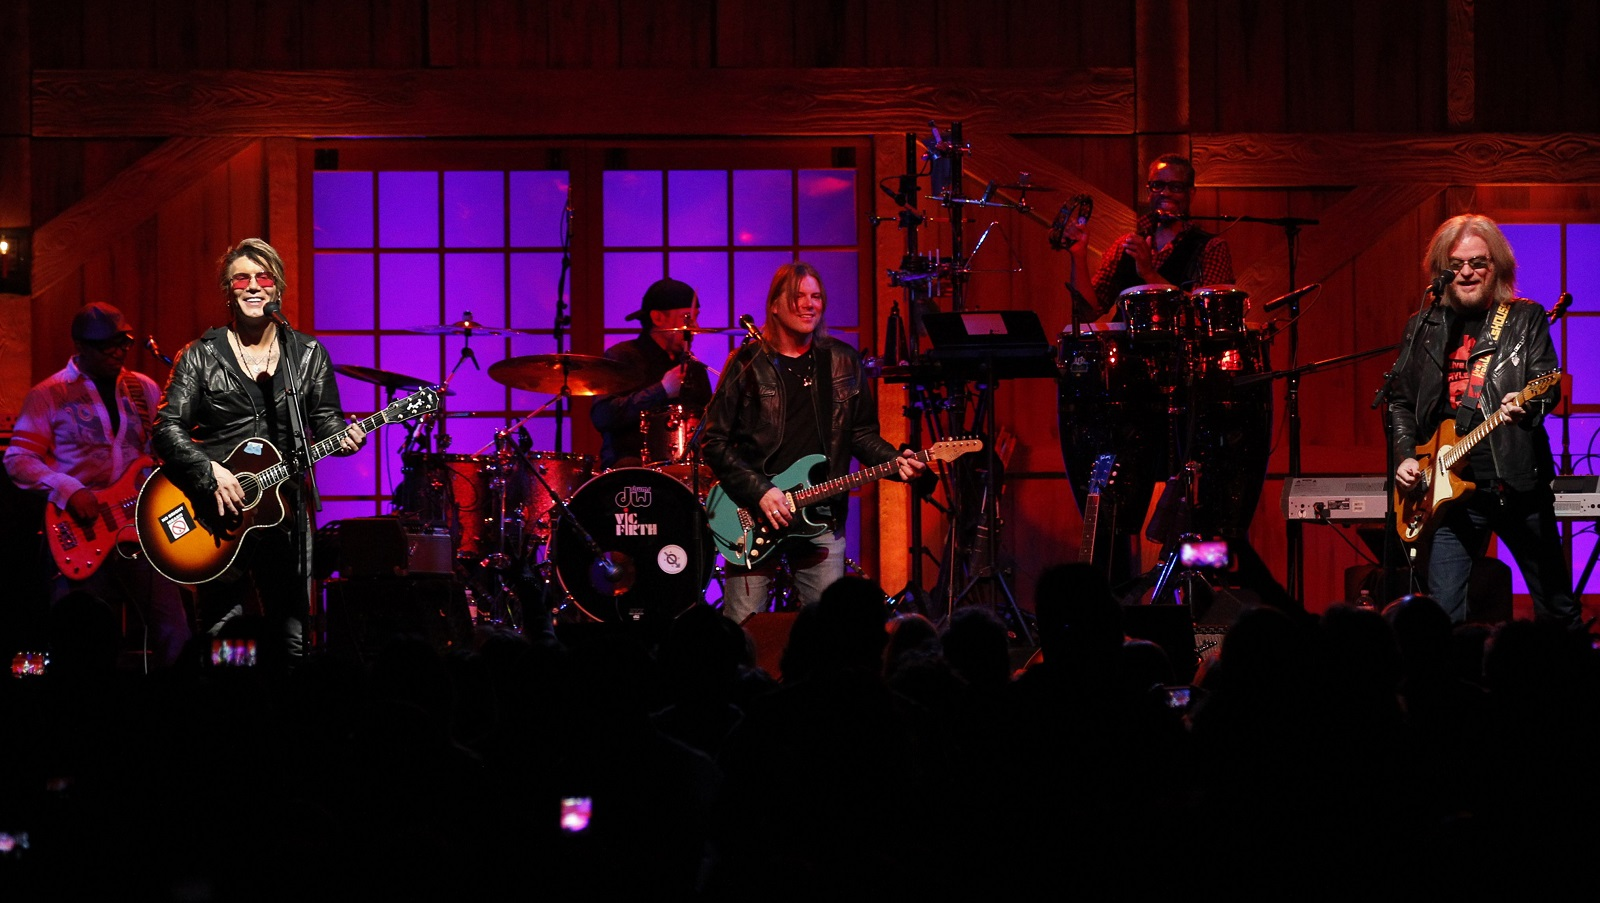 Hall, Rzeznik enjoy a night of music, garage-band style